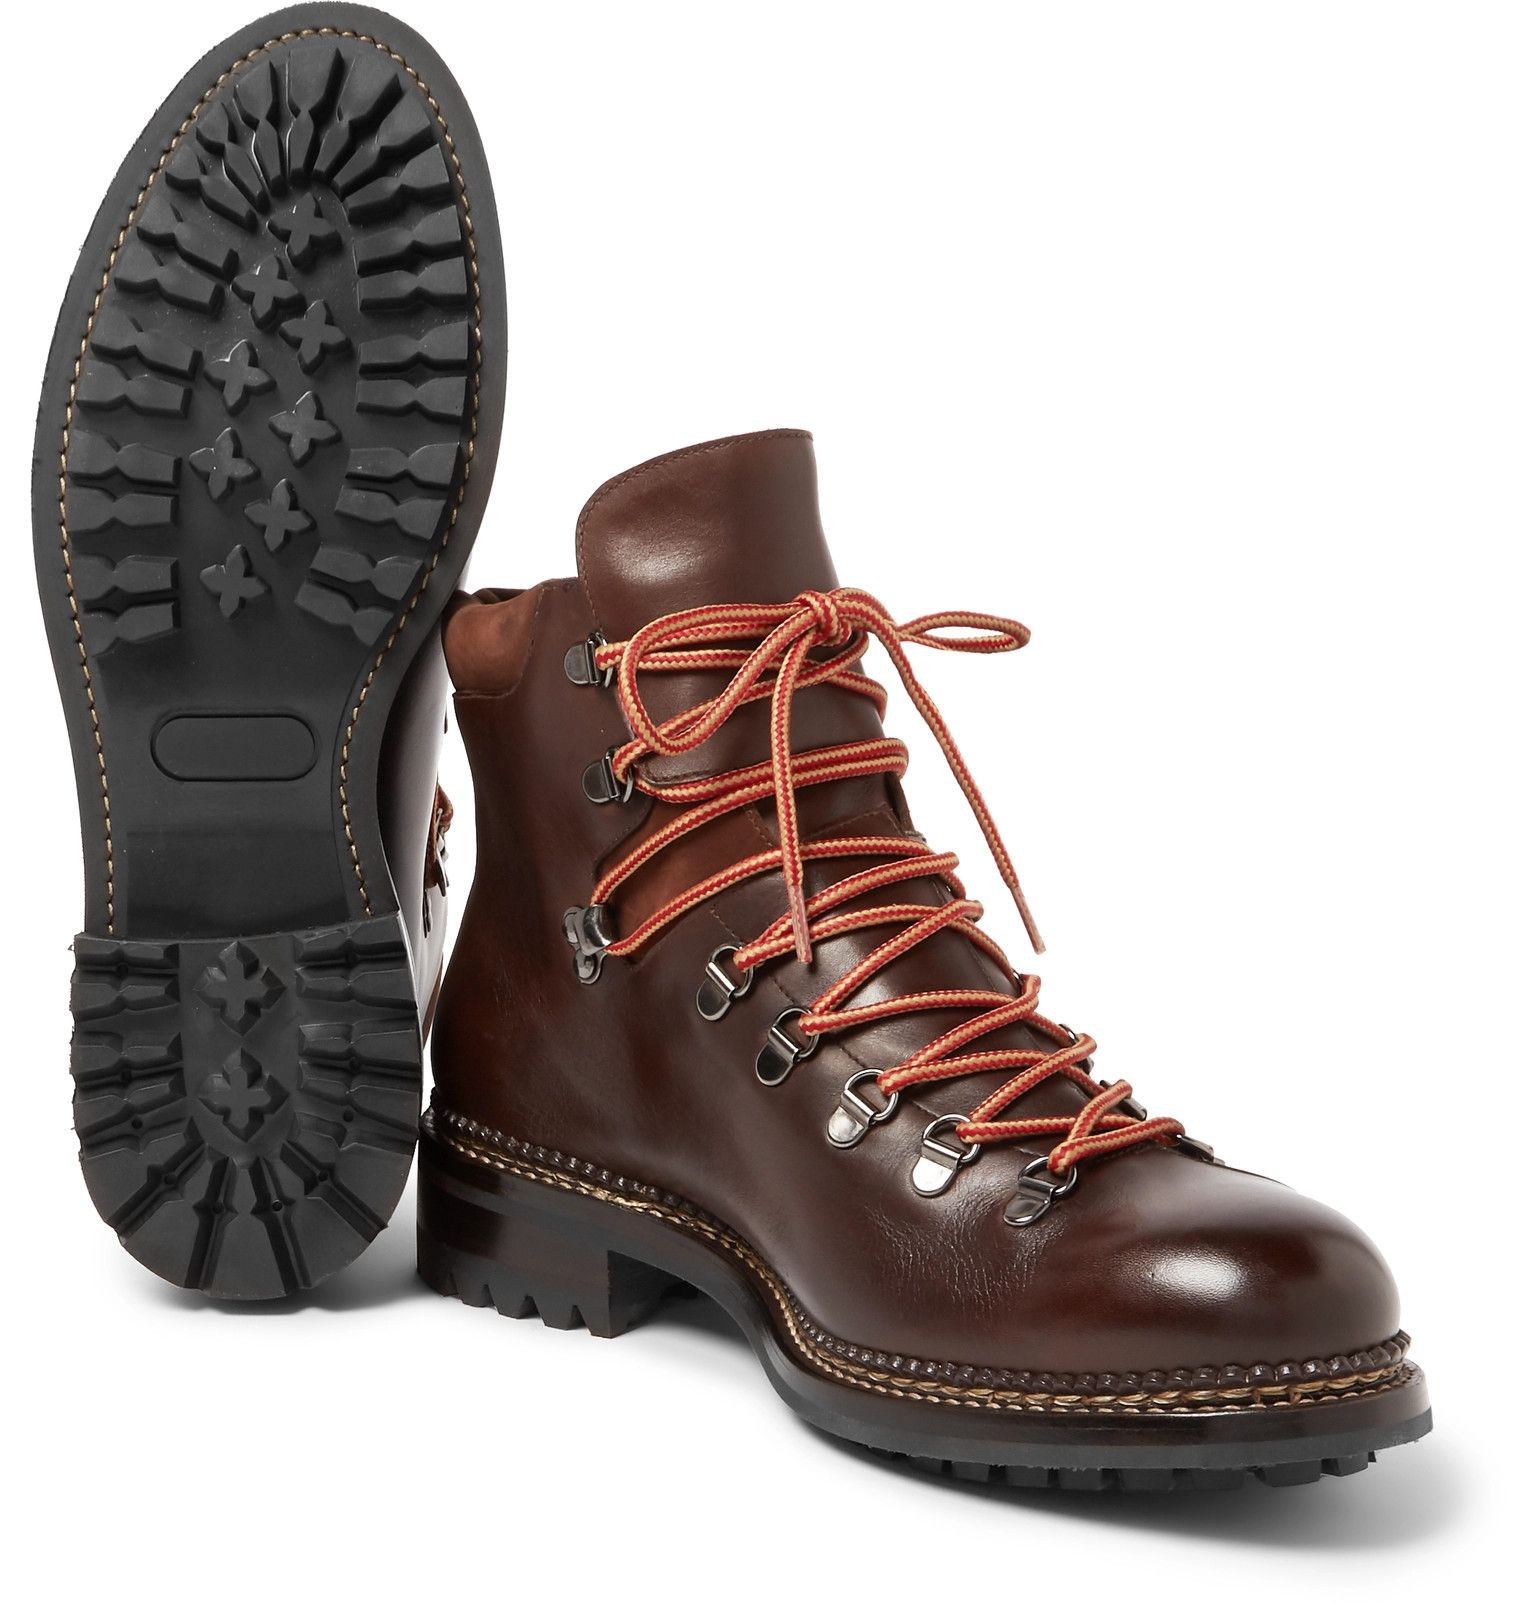 Polished Austin BootsBrown trimmed leather Suede O Keeffe OPkZiuXT